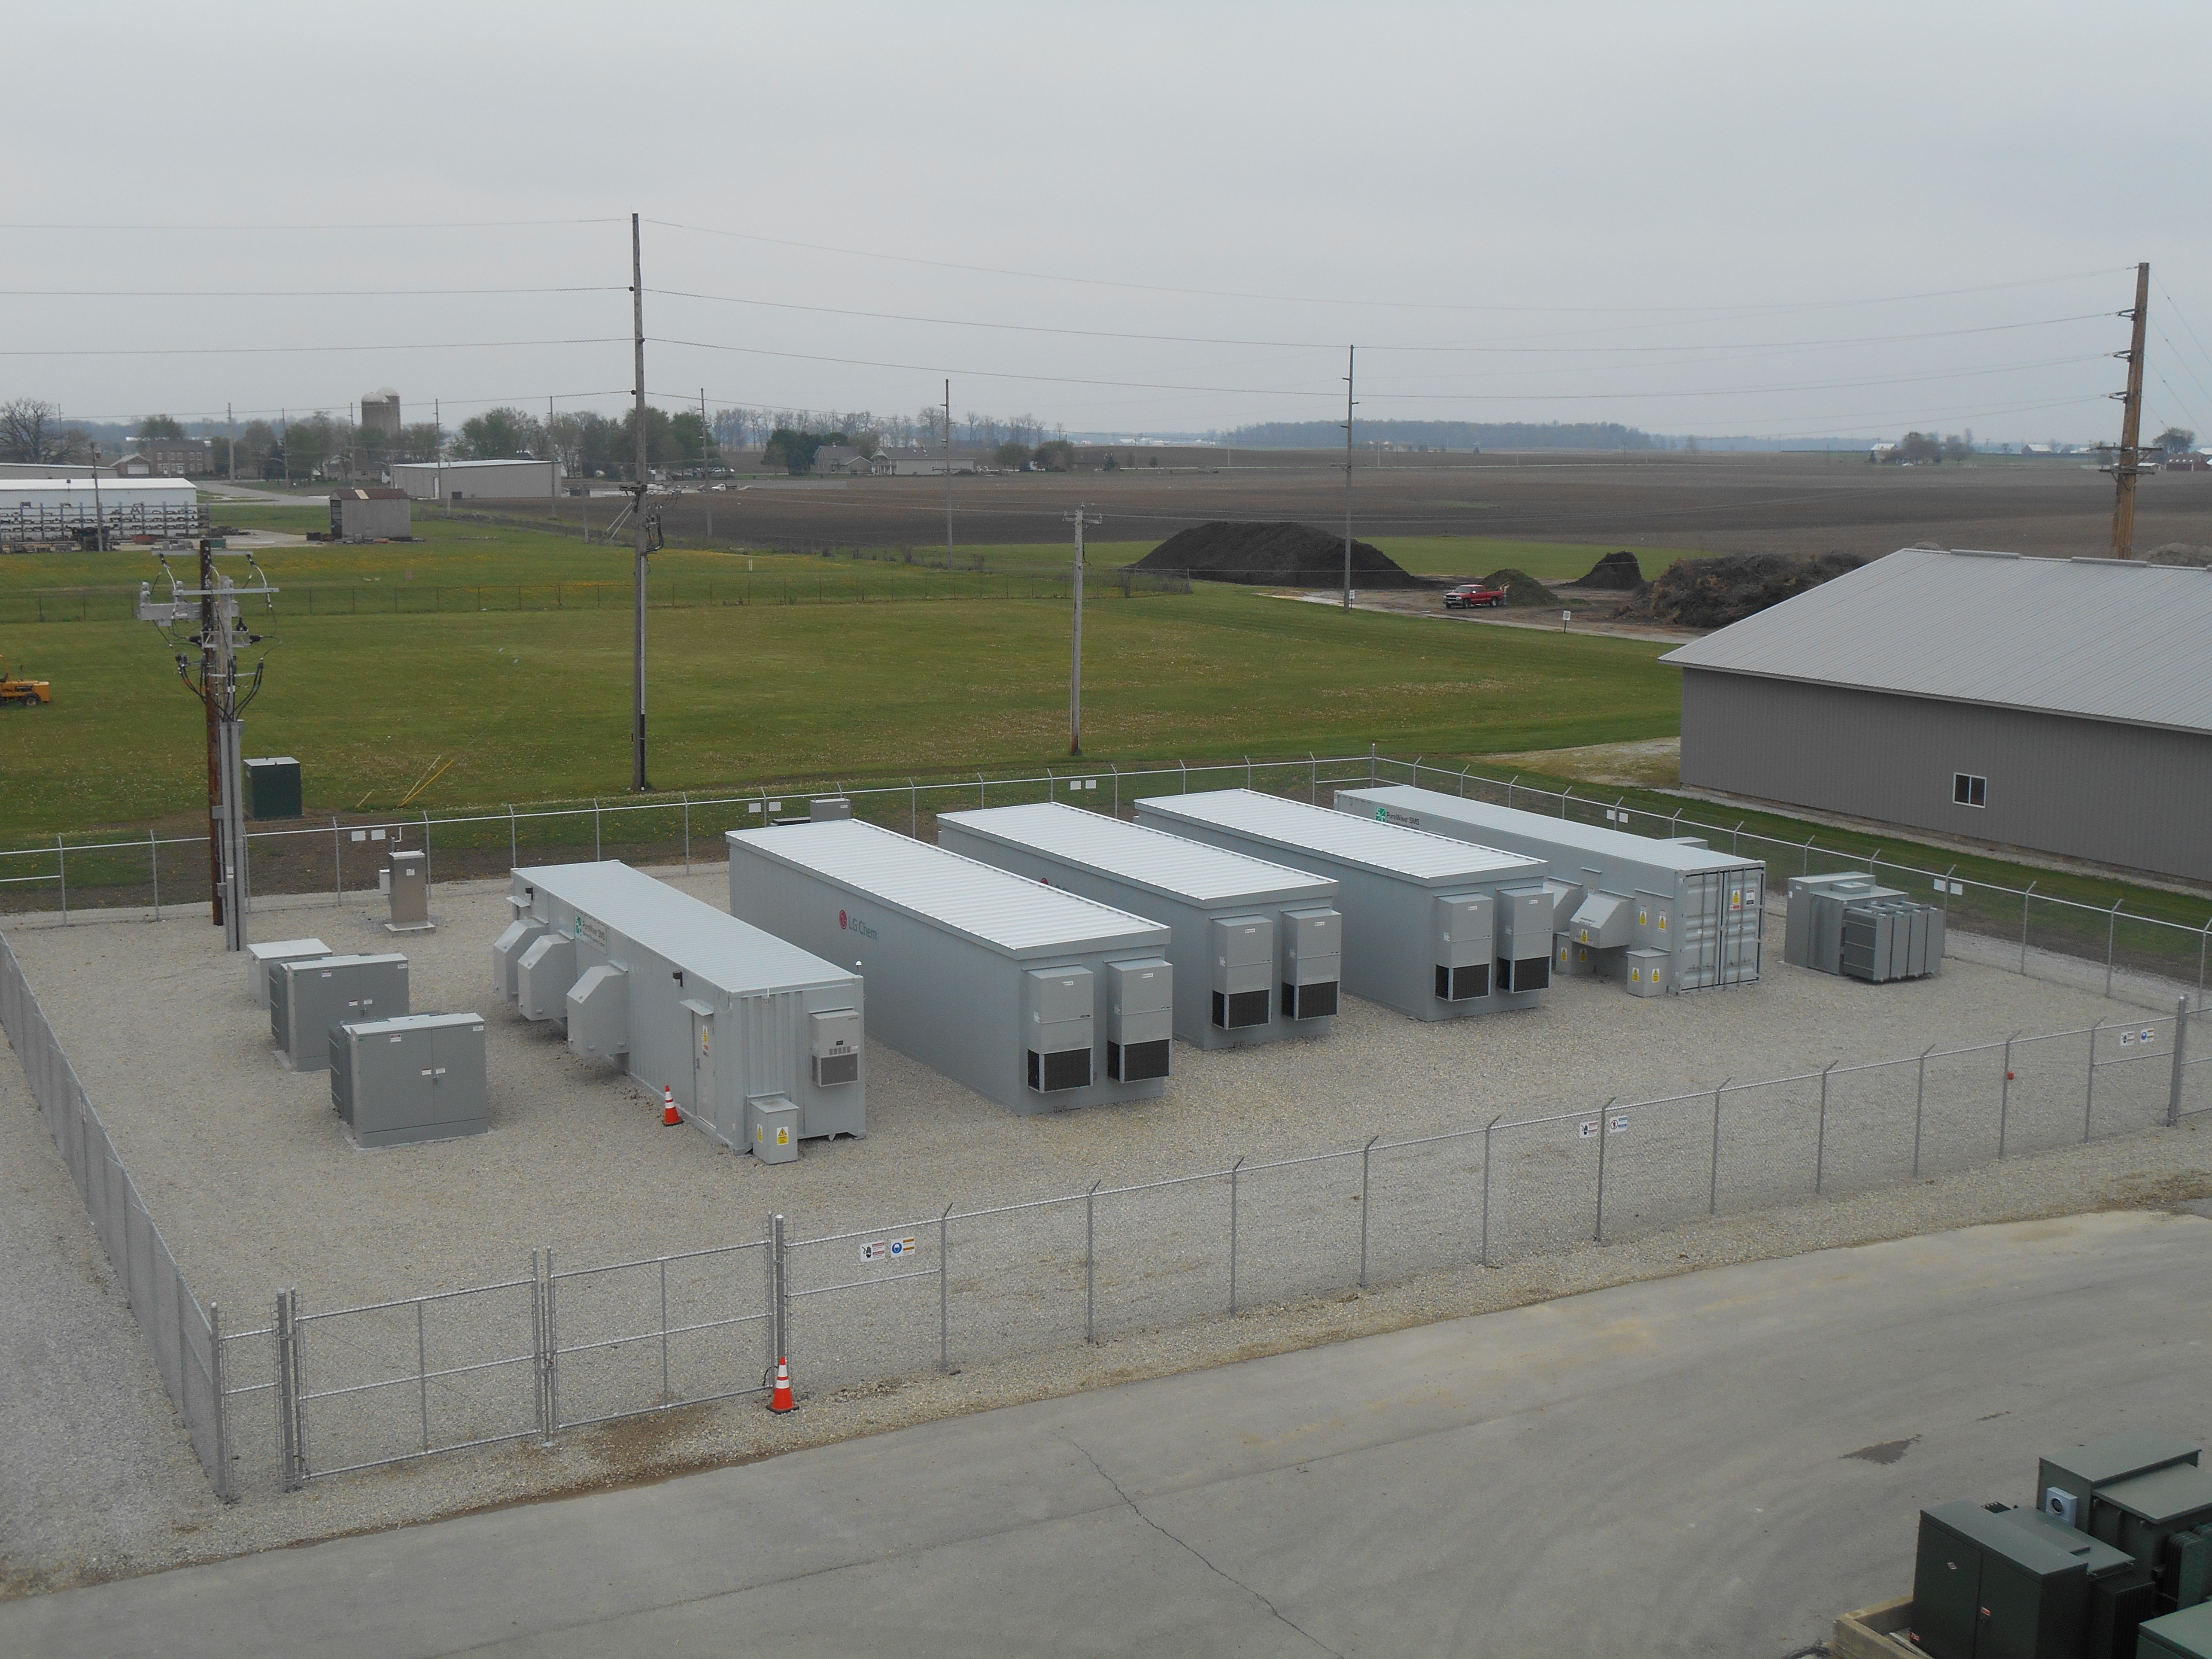 Field-proven LG Chem batteries integrated into the S&C energy storage system generate multiple revenue streams for Half Moon Ventures and the Village of Minster, Ohio, while providing the electric grid with increased robustness and reliability. (Photo: Business Wire)